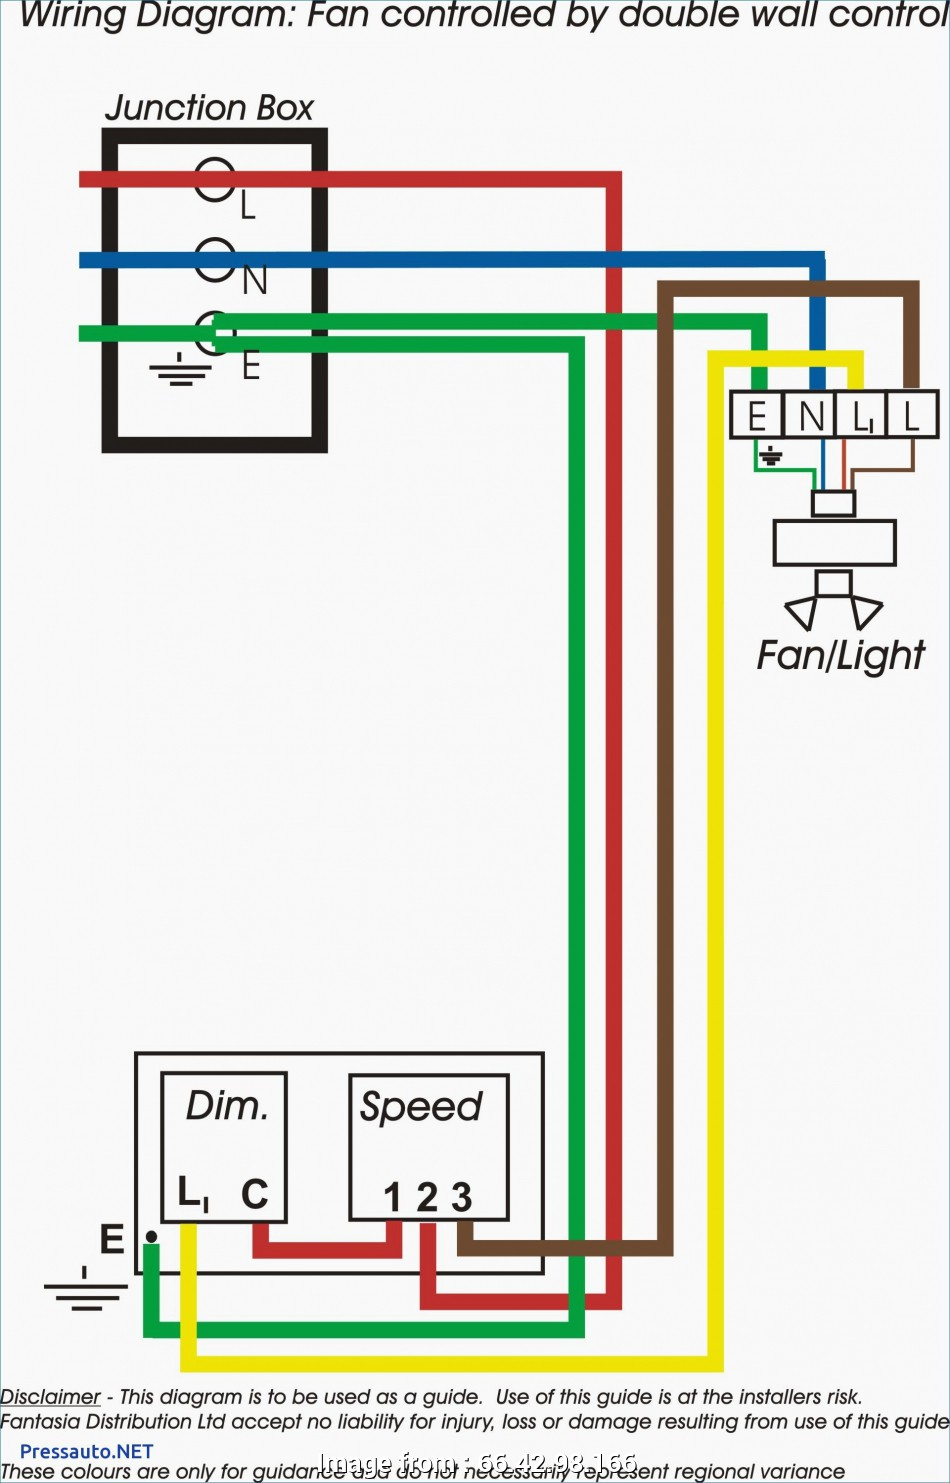 wiring a dimmer switch nz popular wiring diagram, light 5 way trailer wiring diagram nz free download wiring diagrams